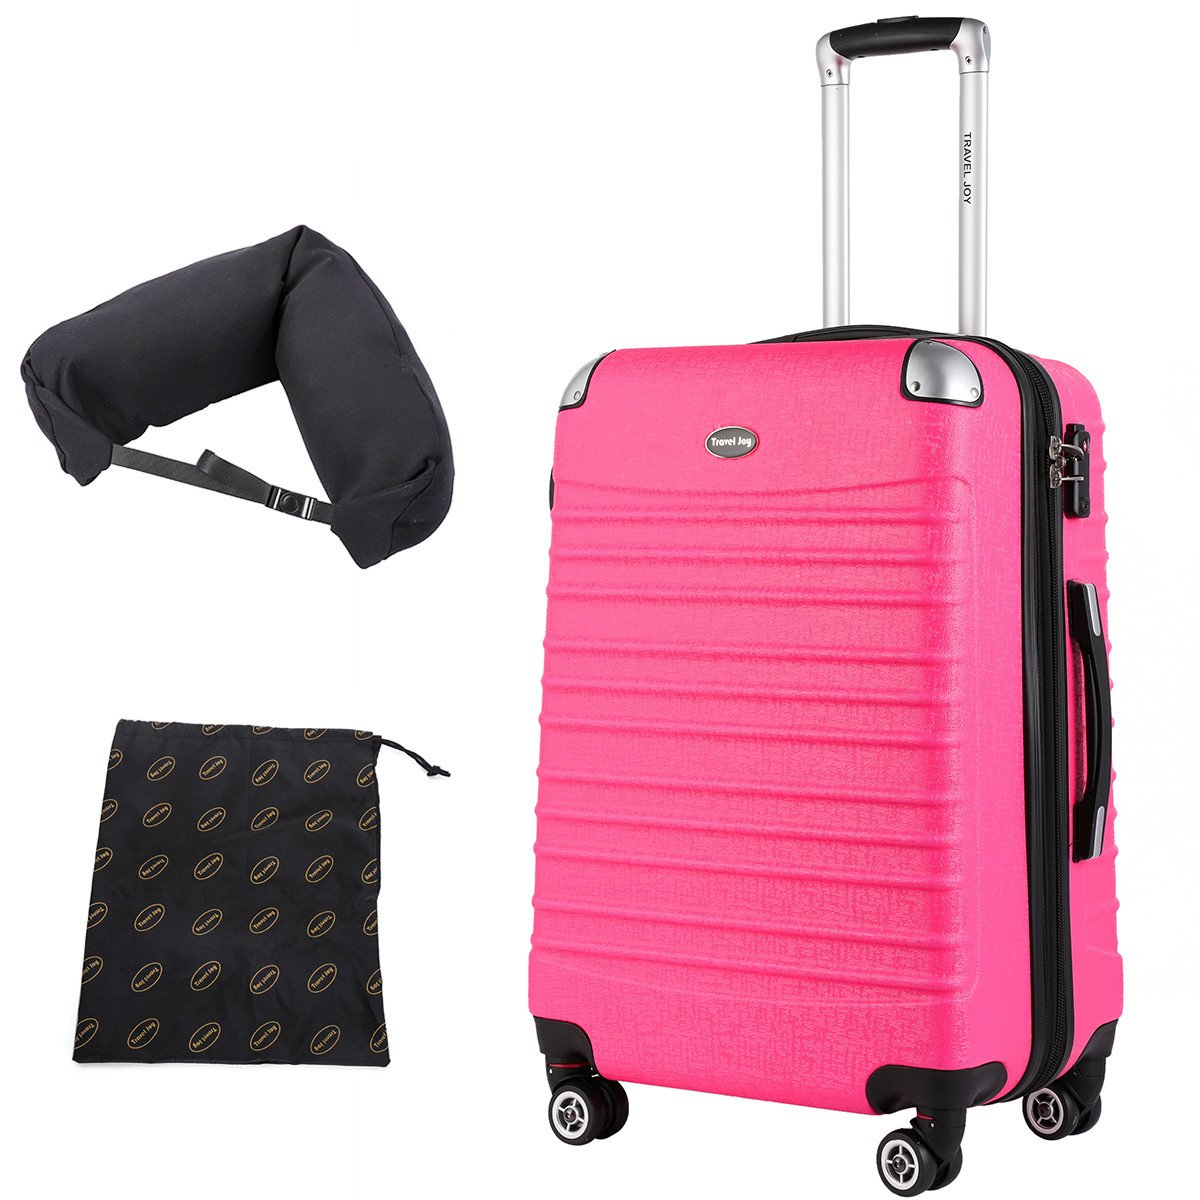 Hardside Carry On Luggage, Lightweight Expandable Spinner Carry Ons TSA Luggage Suitcase, 20 inches (HOT PINK)